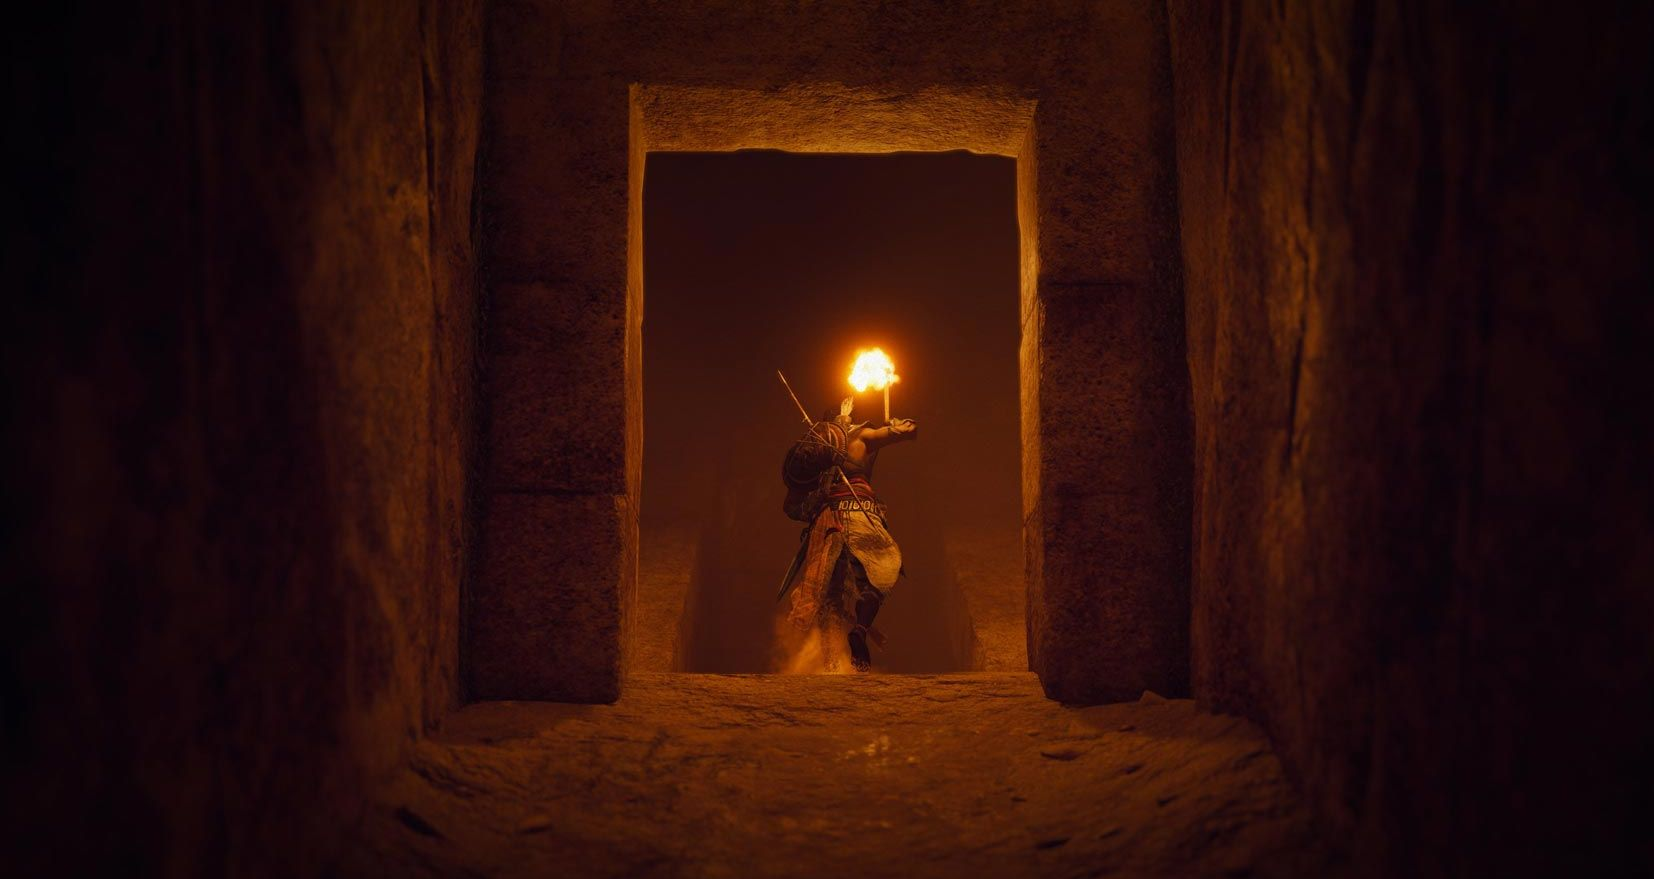 Assassin's Creed Origins New Game + Mode Is on the Way